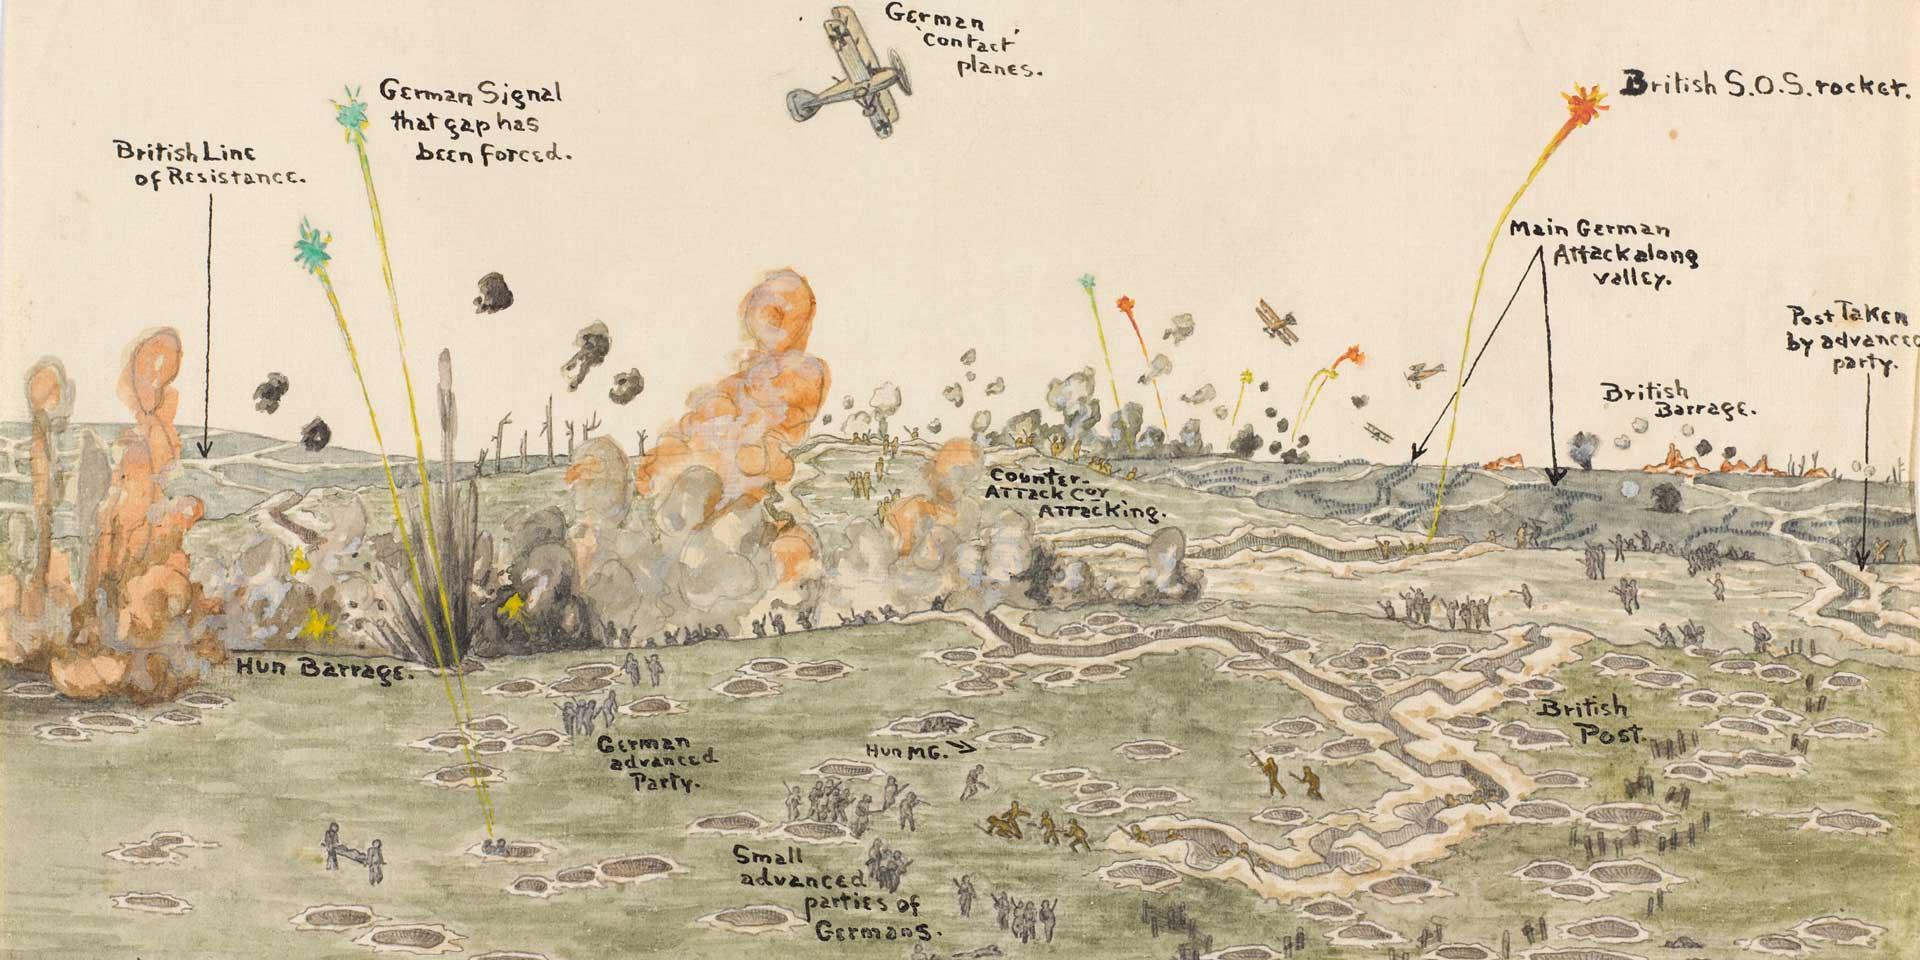 'Panoramic view of attack by infiltration, 1918' by Lieutenant Richard Talbot Kelly